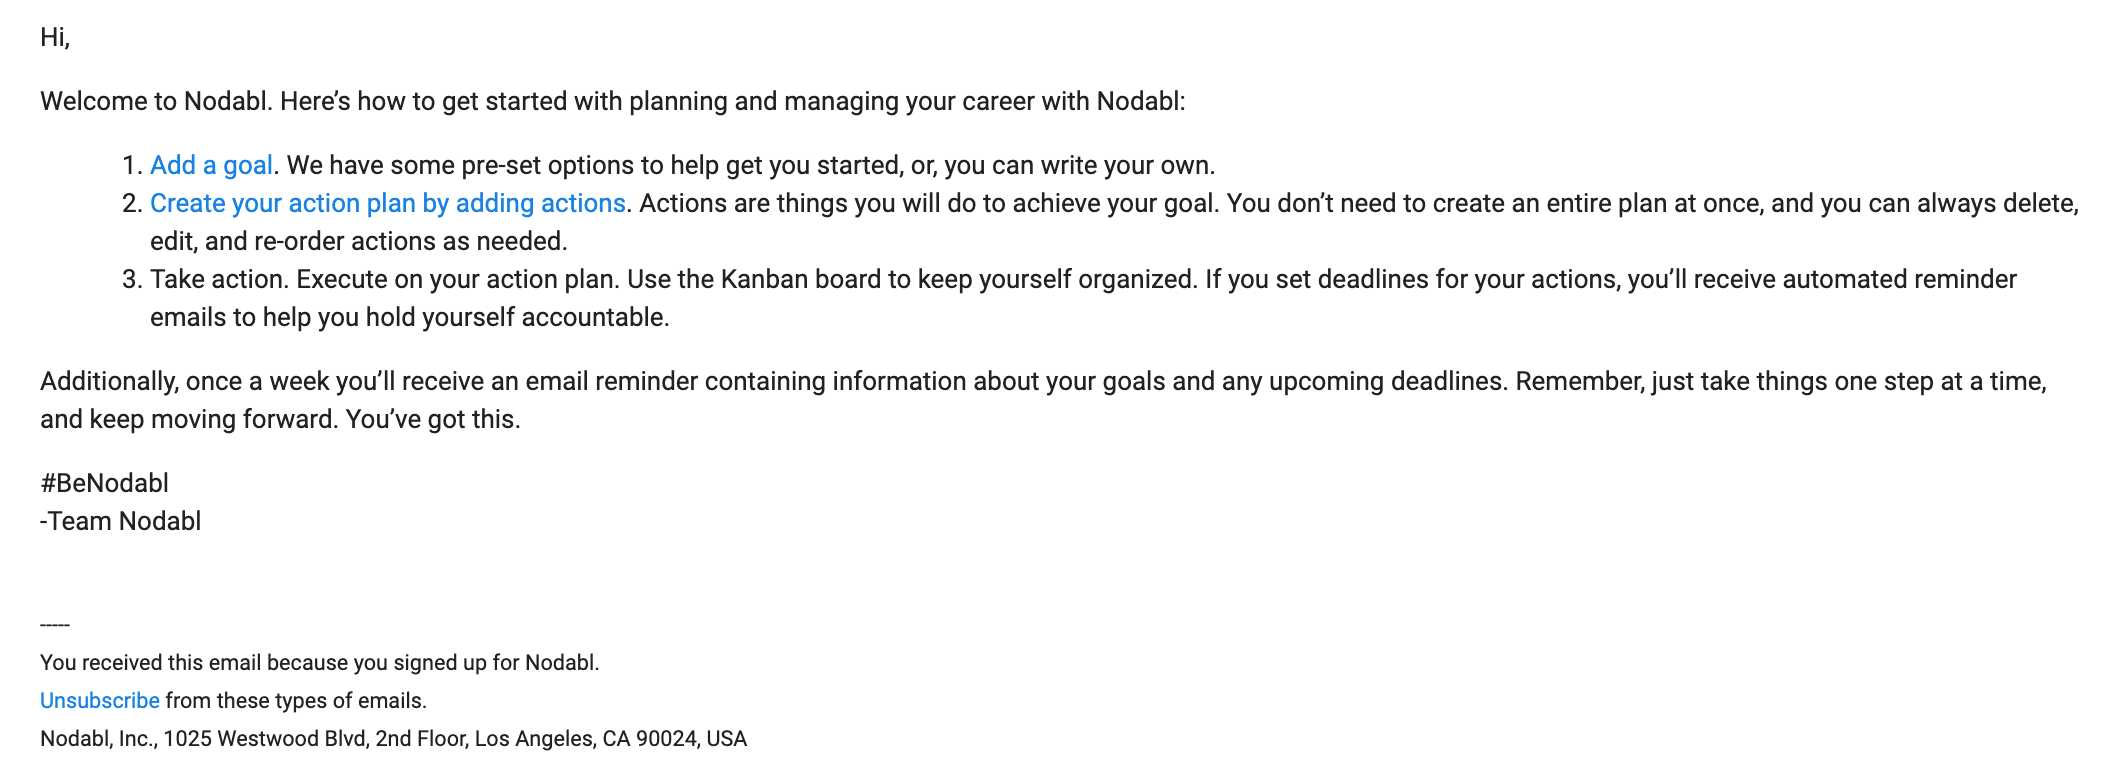 nodabl welcome email 2